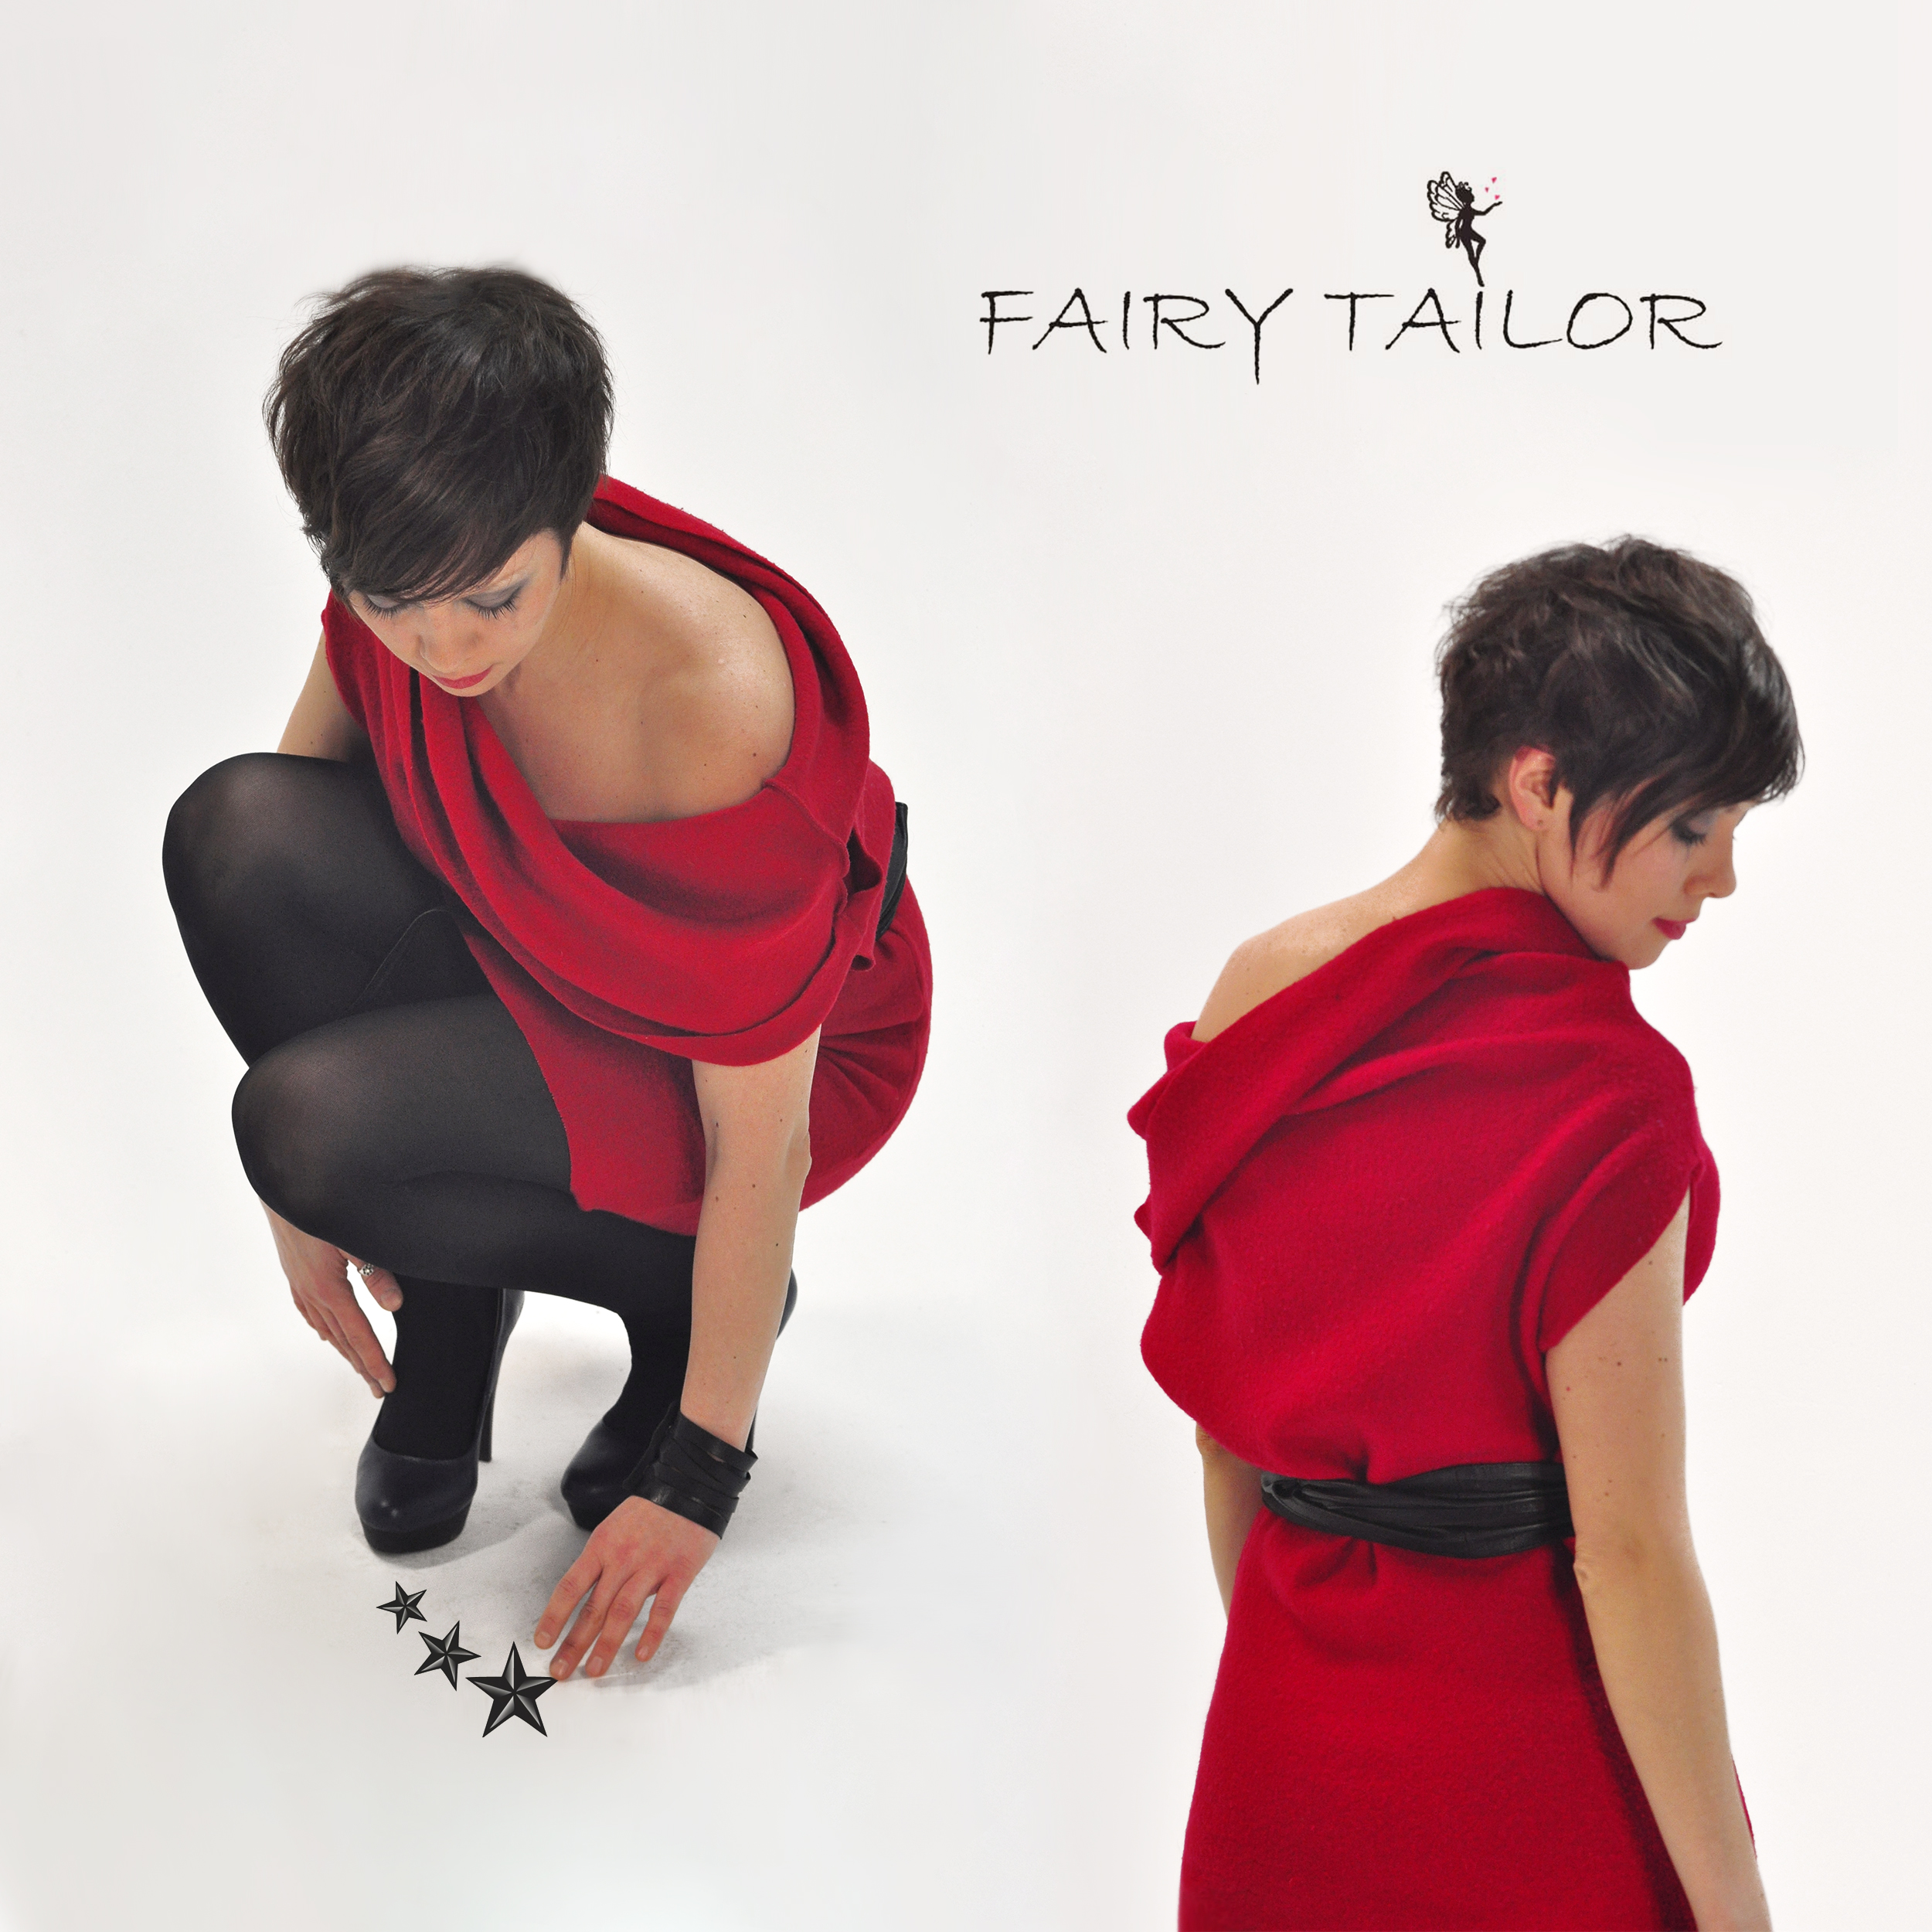 K&V Fairy Tailor Fashion Photoset